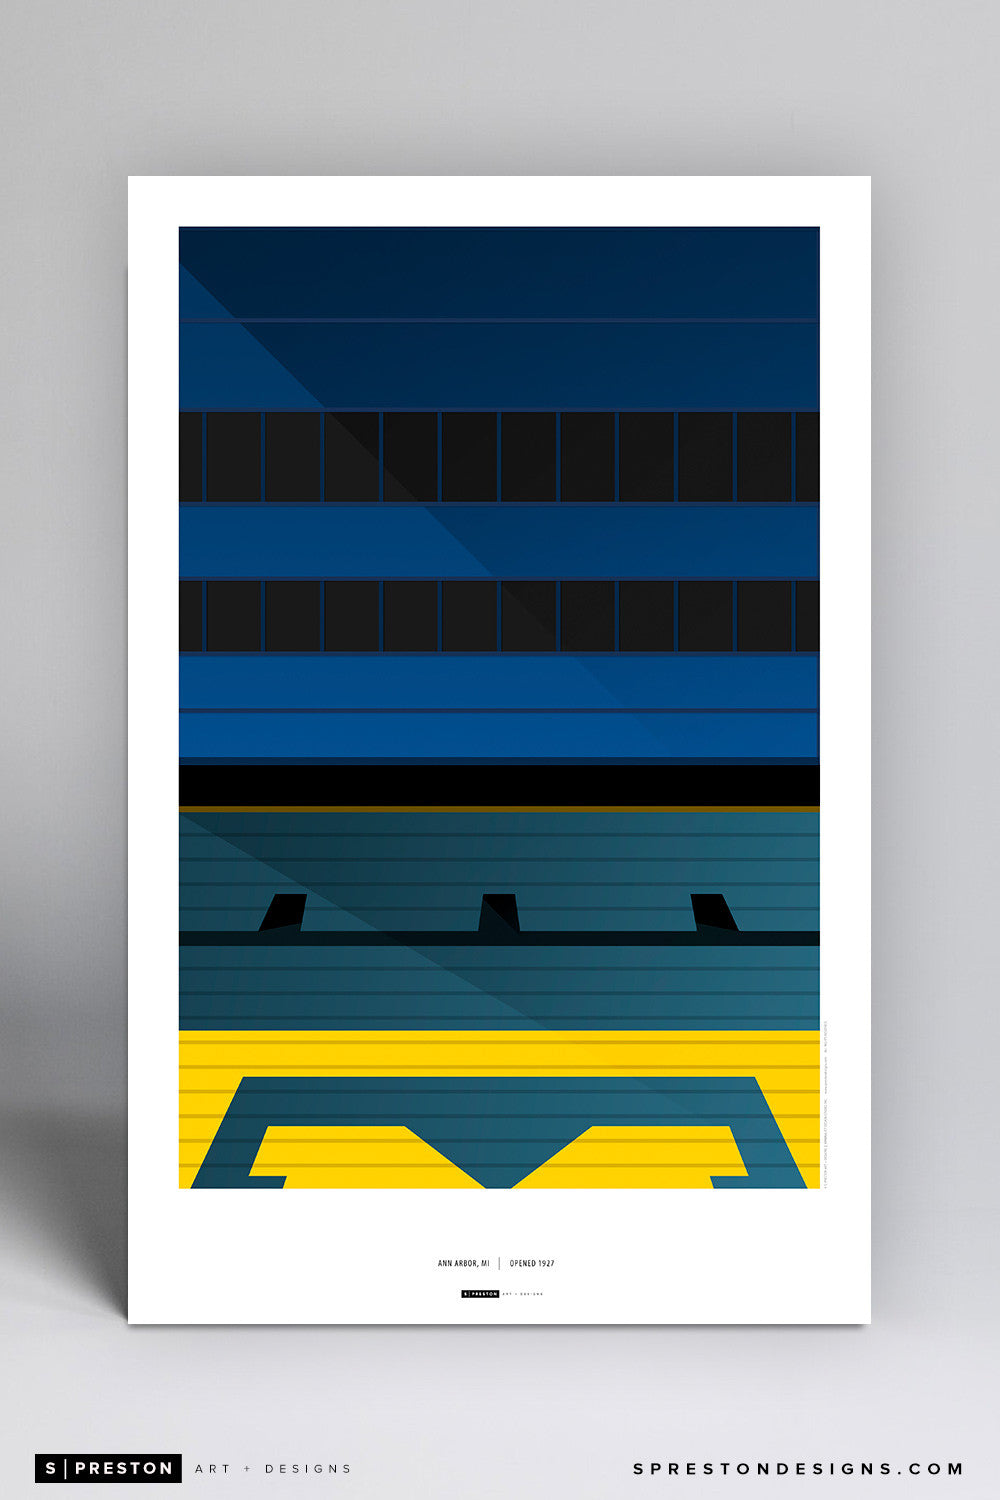 Minimalist Michigan Stadium Art Poster (Grandstand) Art Poster - University of Michigan - S. Preston Art + Designs